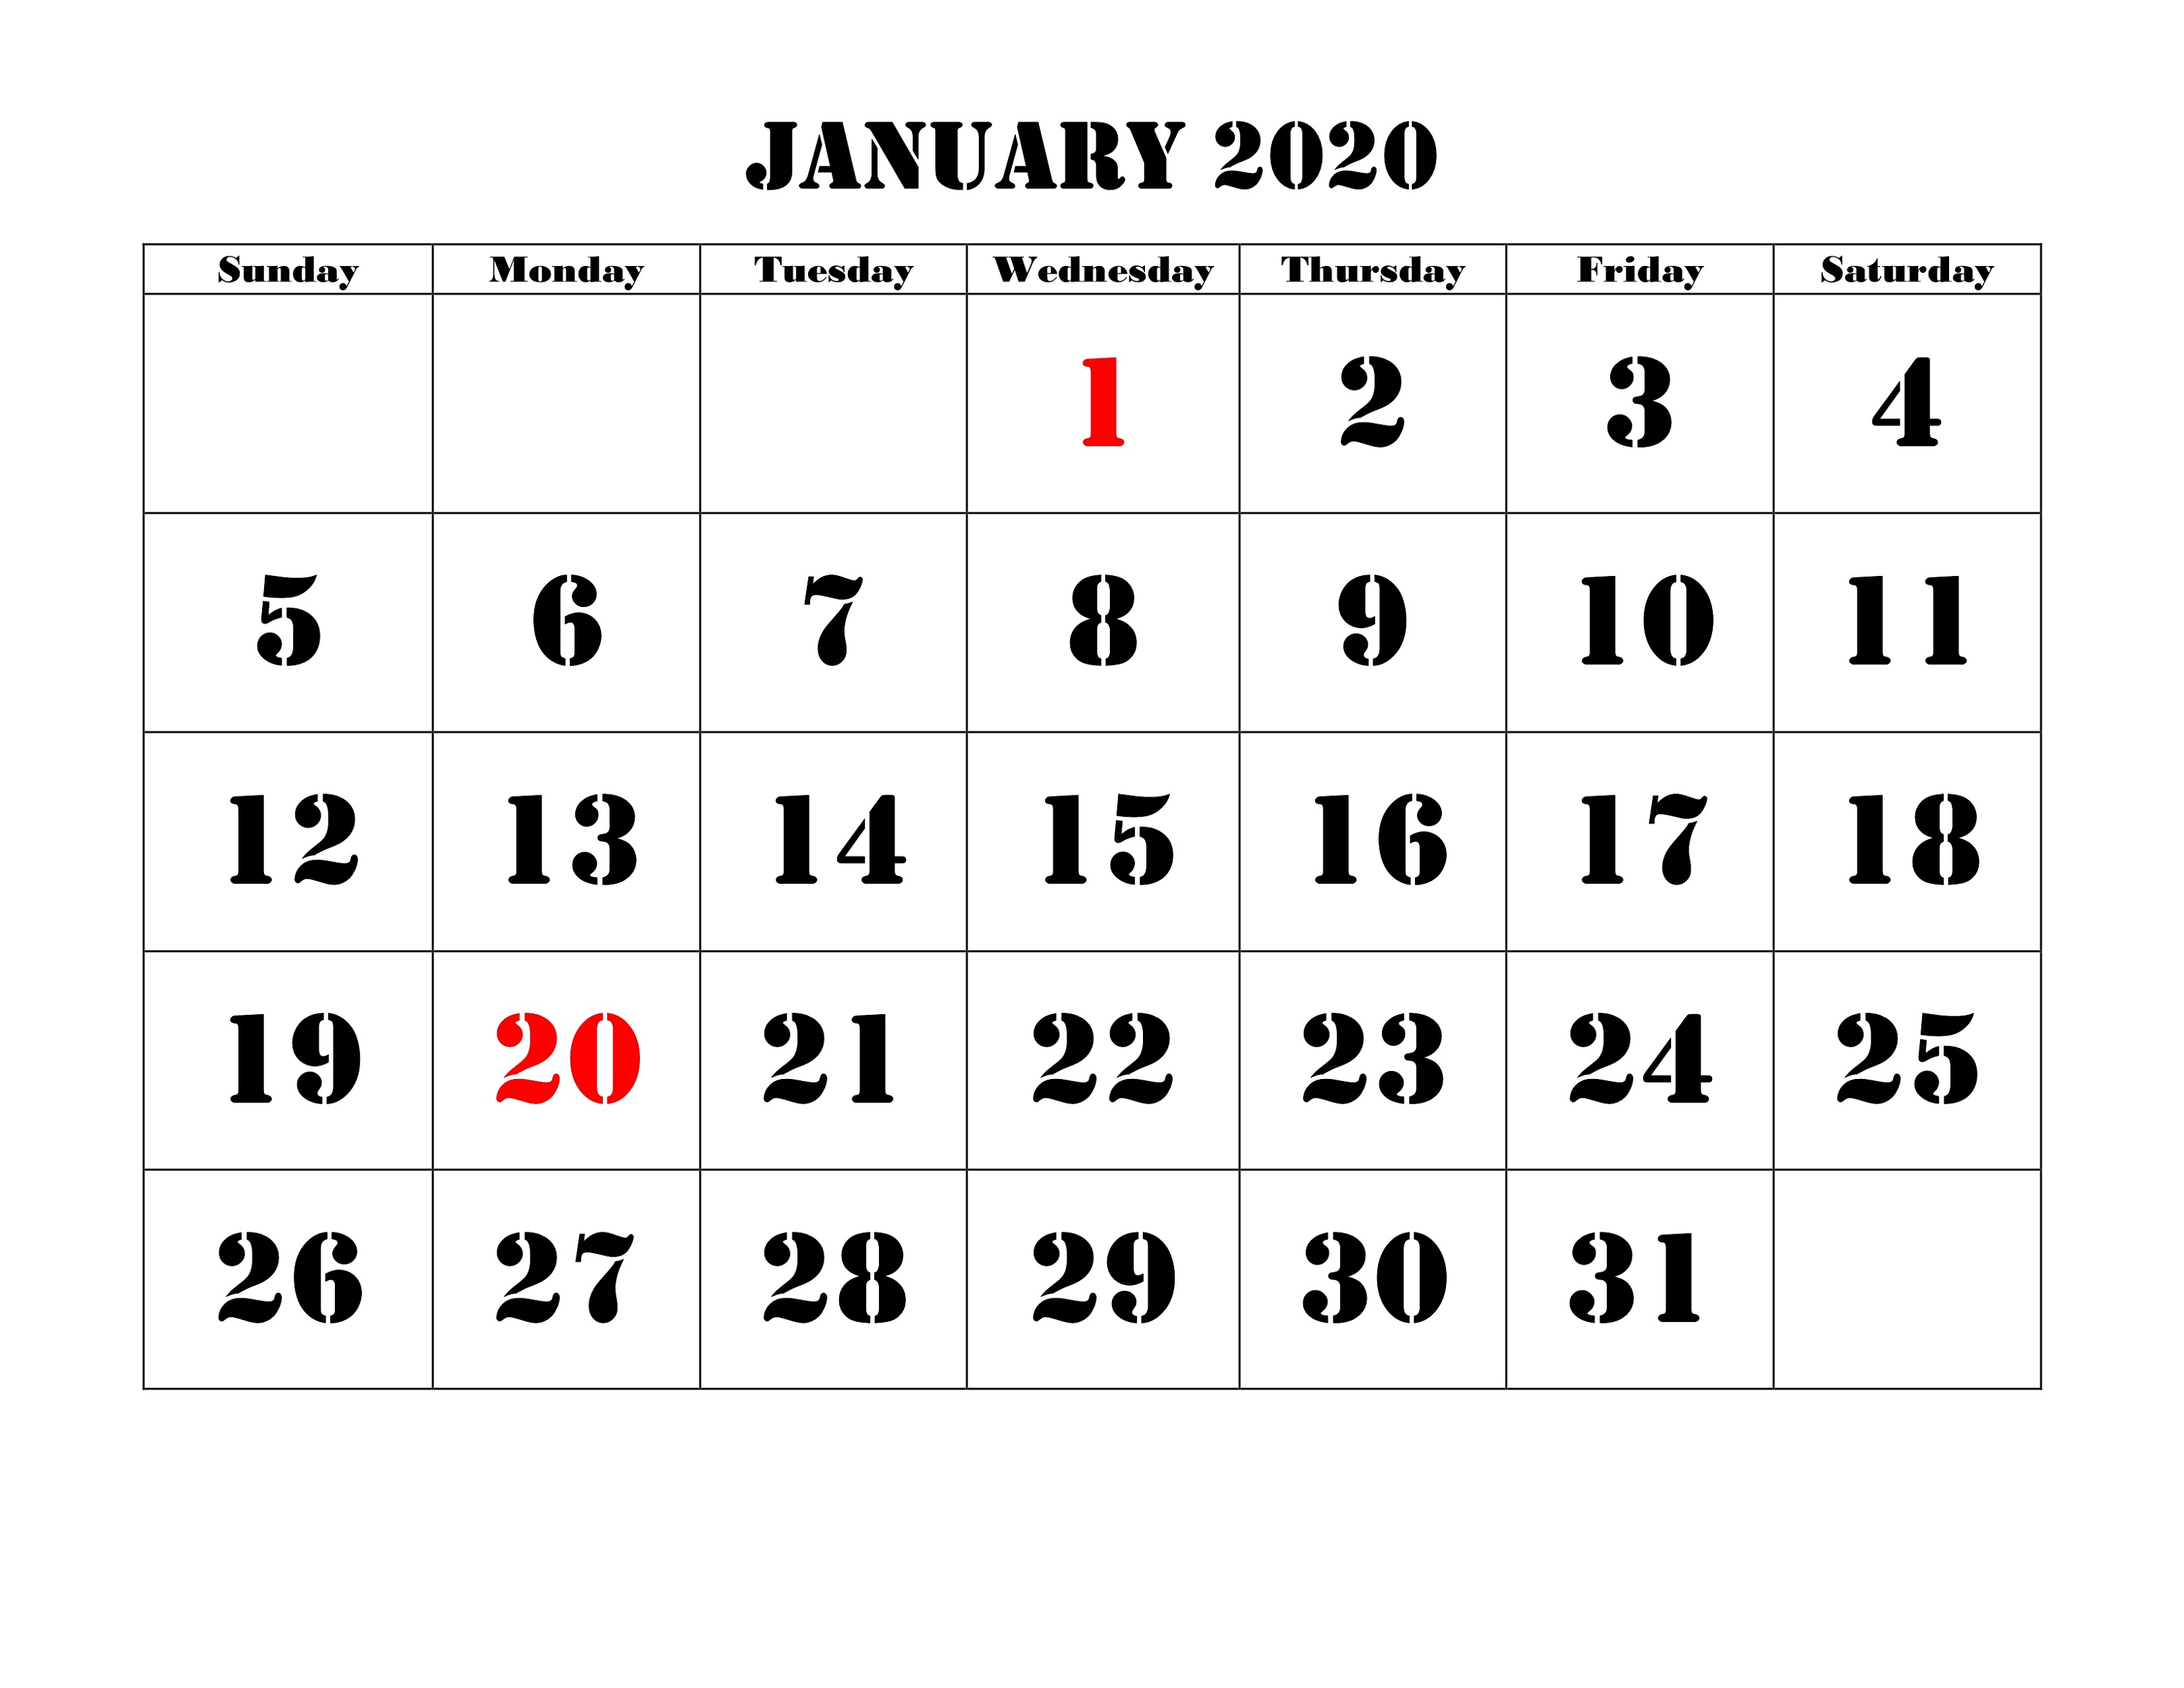 Print Blank Calendar 2020 Yearly And Monthly | Calendar Shelter with regard to Calendarpedia January 2020